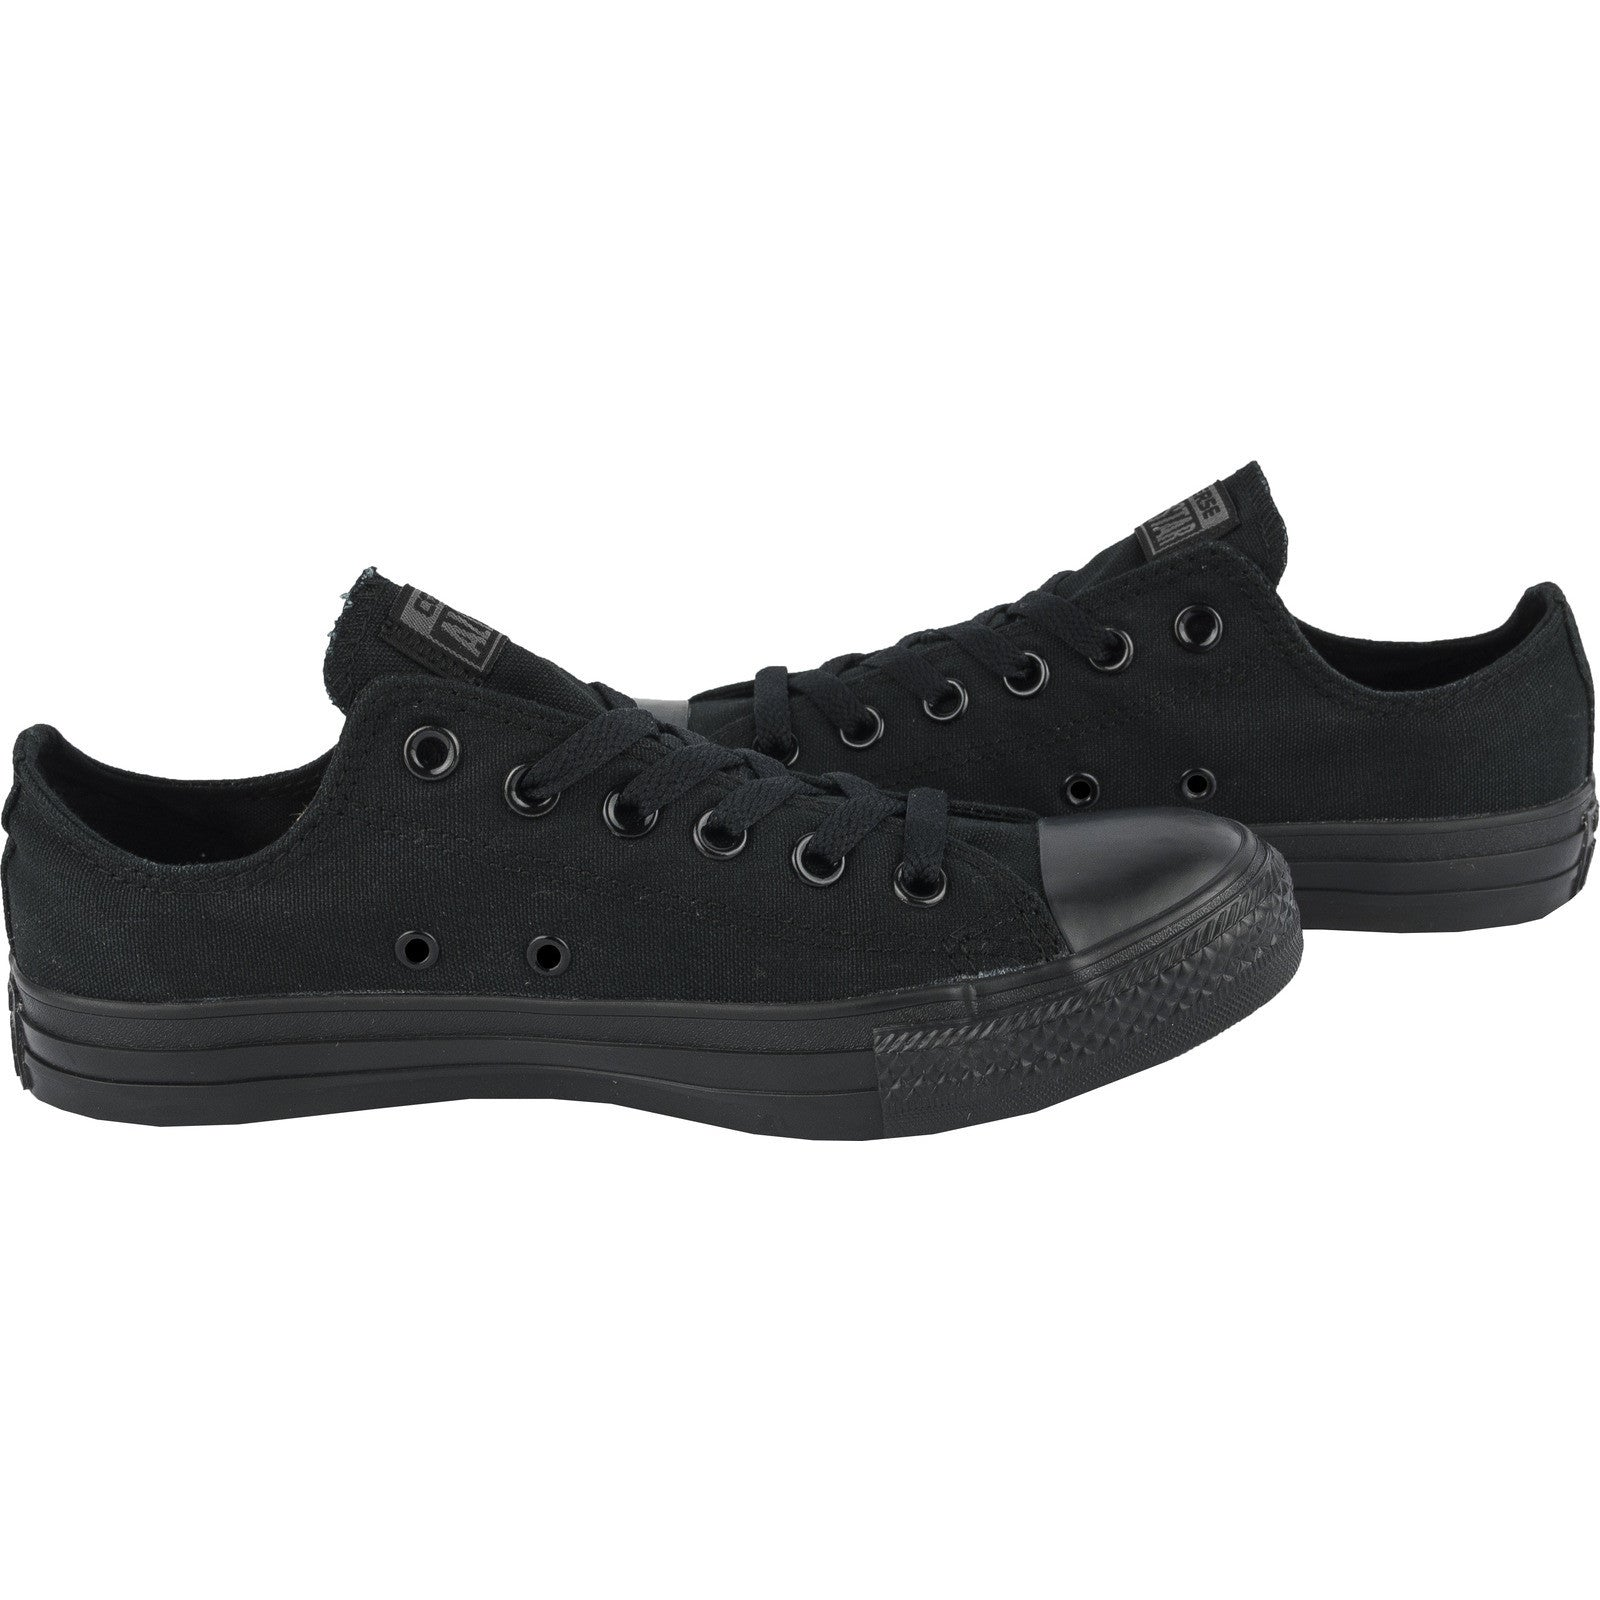 The Converse Chuck Taylor All Star Black Monochrome Low Top